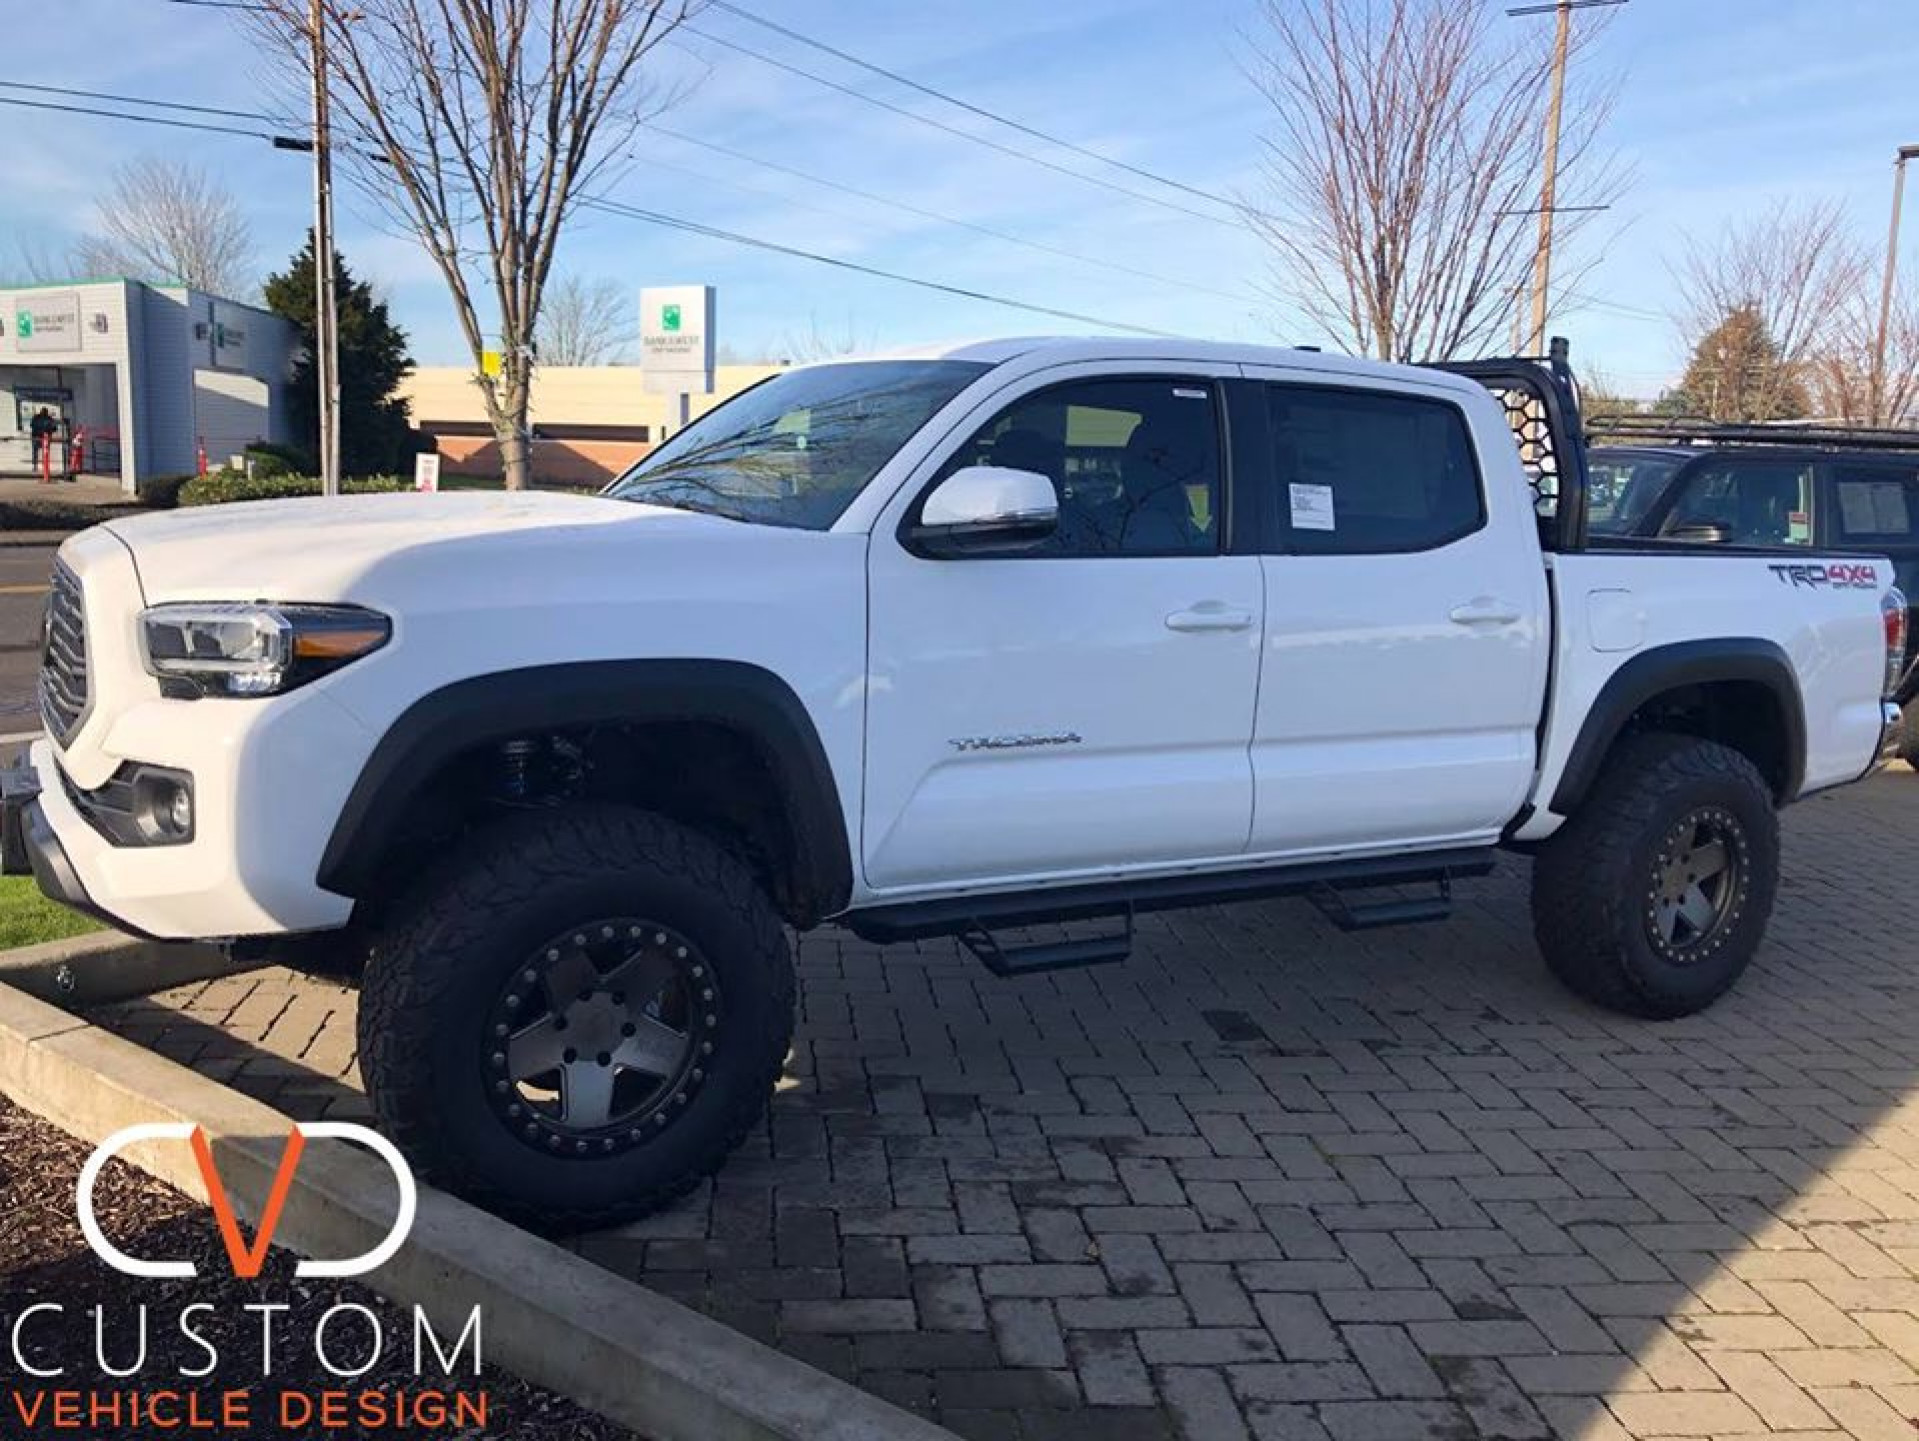 2020 Toyota Tacoma with 17 inch Black Rhino Crawler wheels